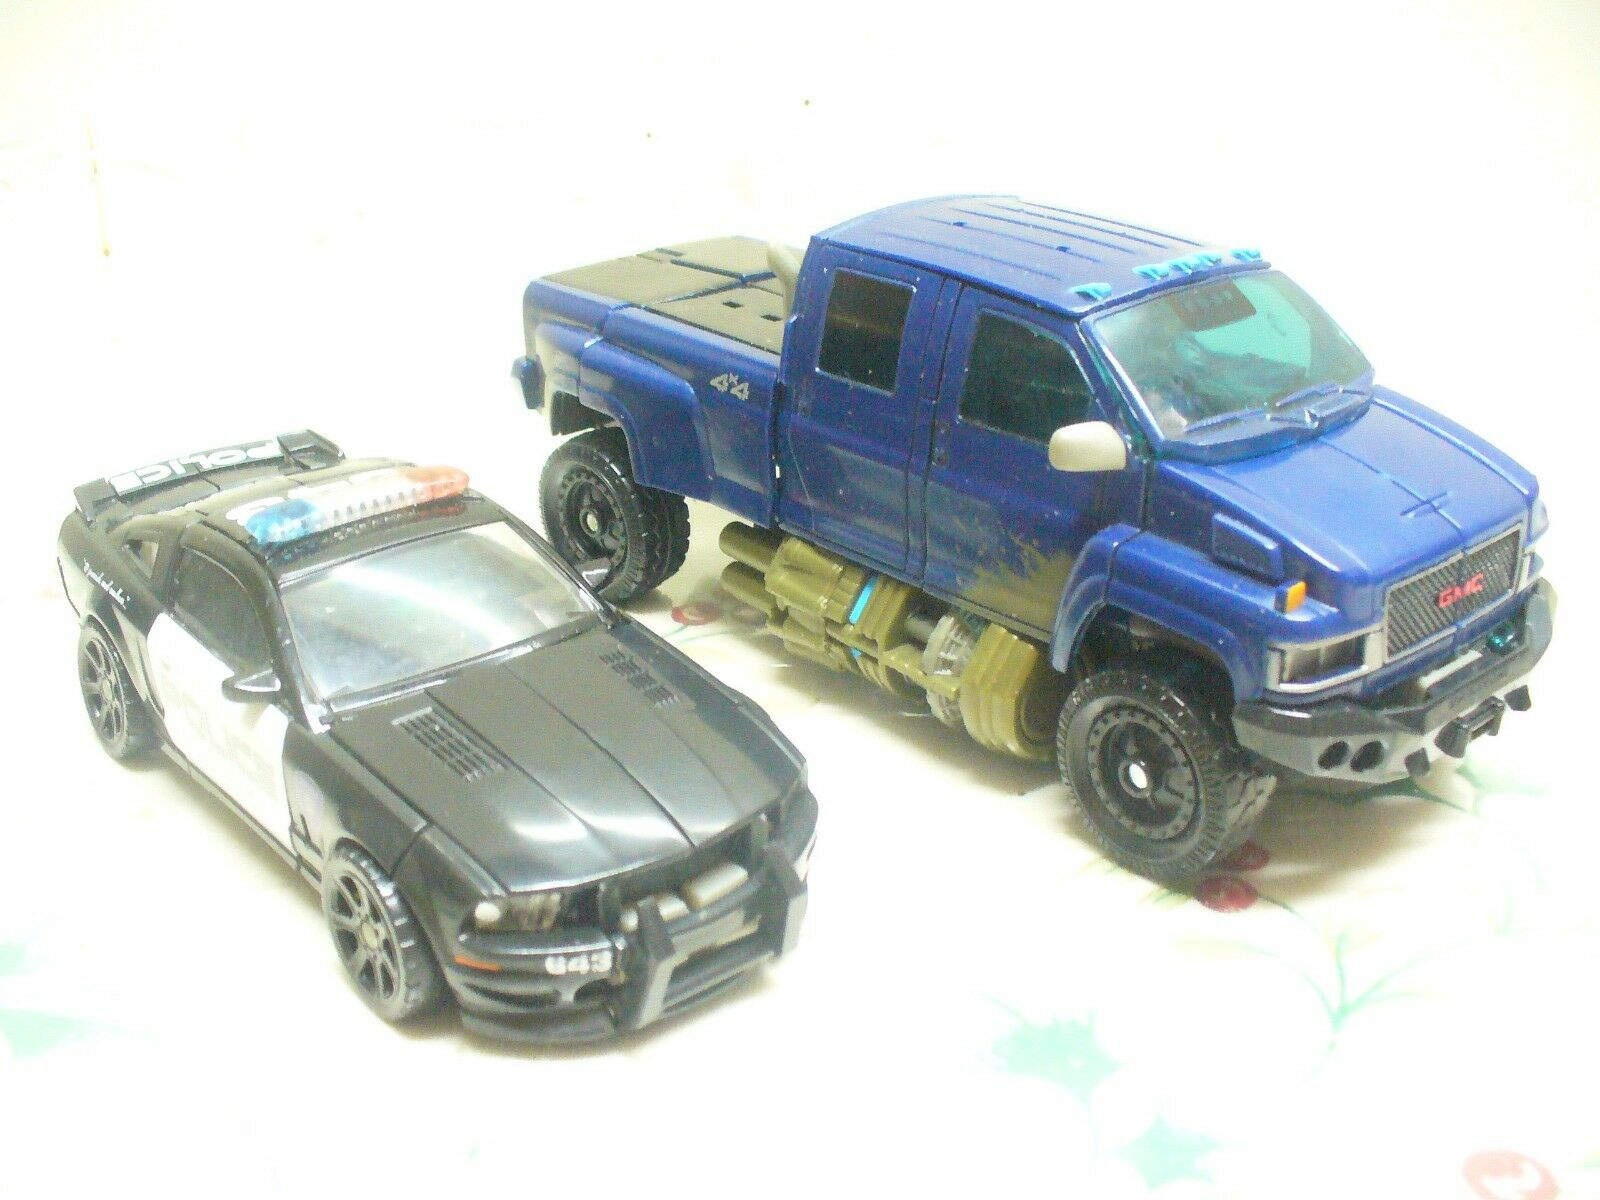 Transformers action action action figures, IRONHIDE & BARRICADE both complete   VGC 829499